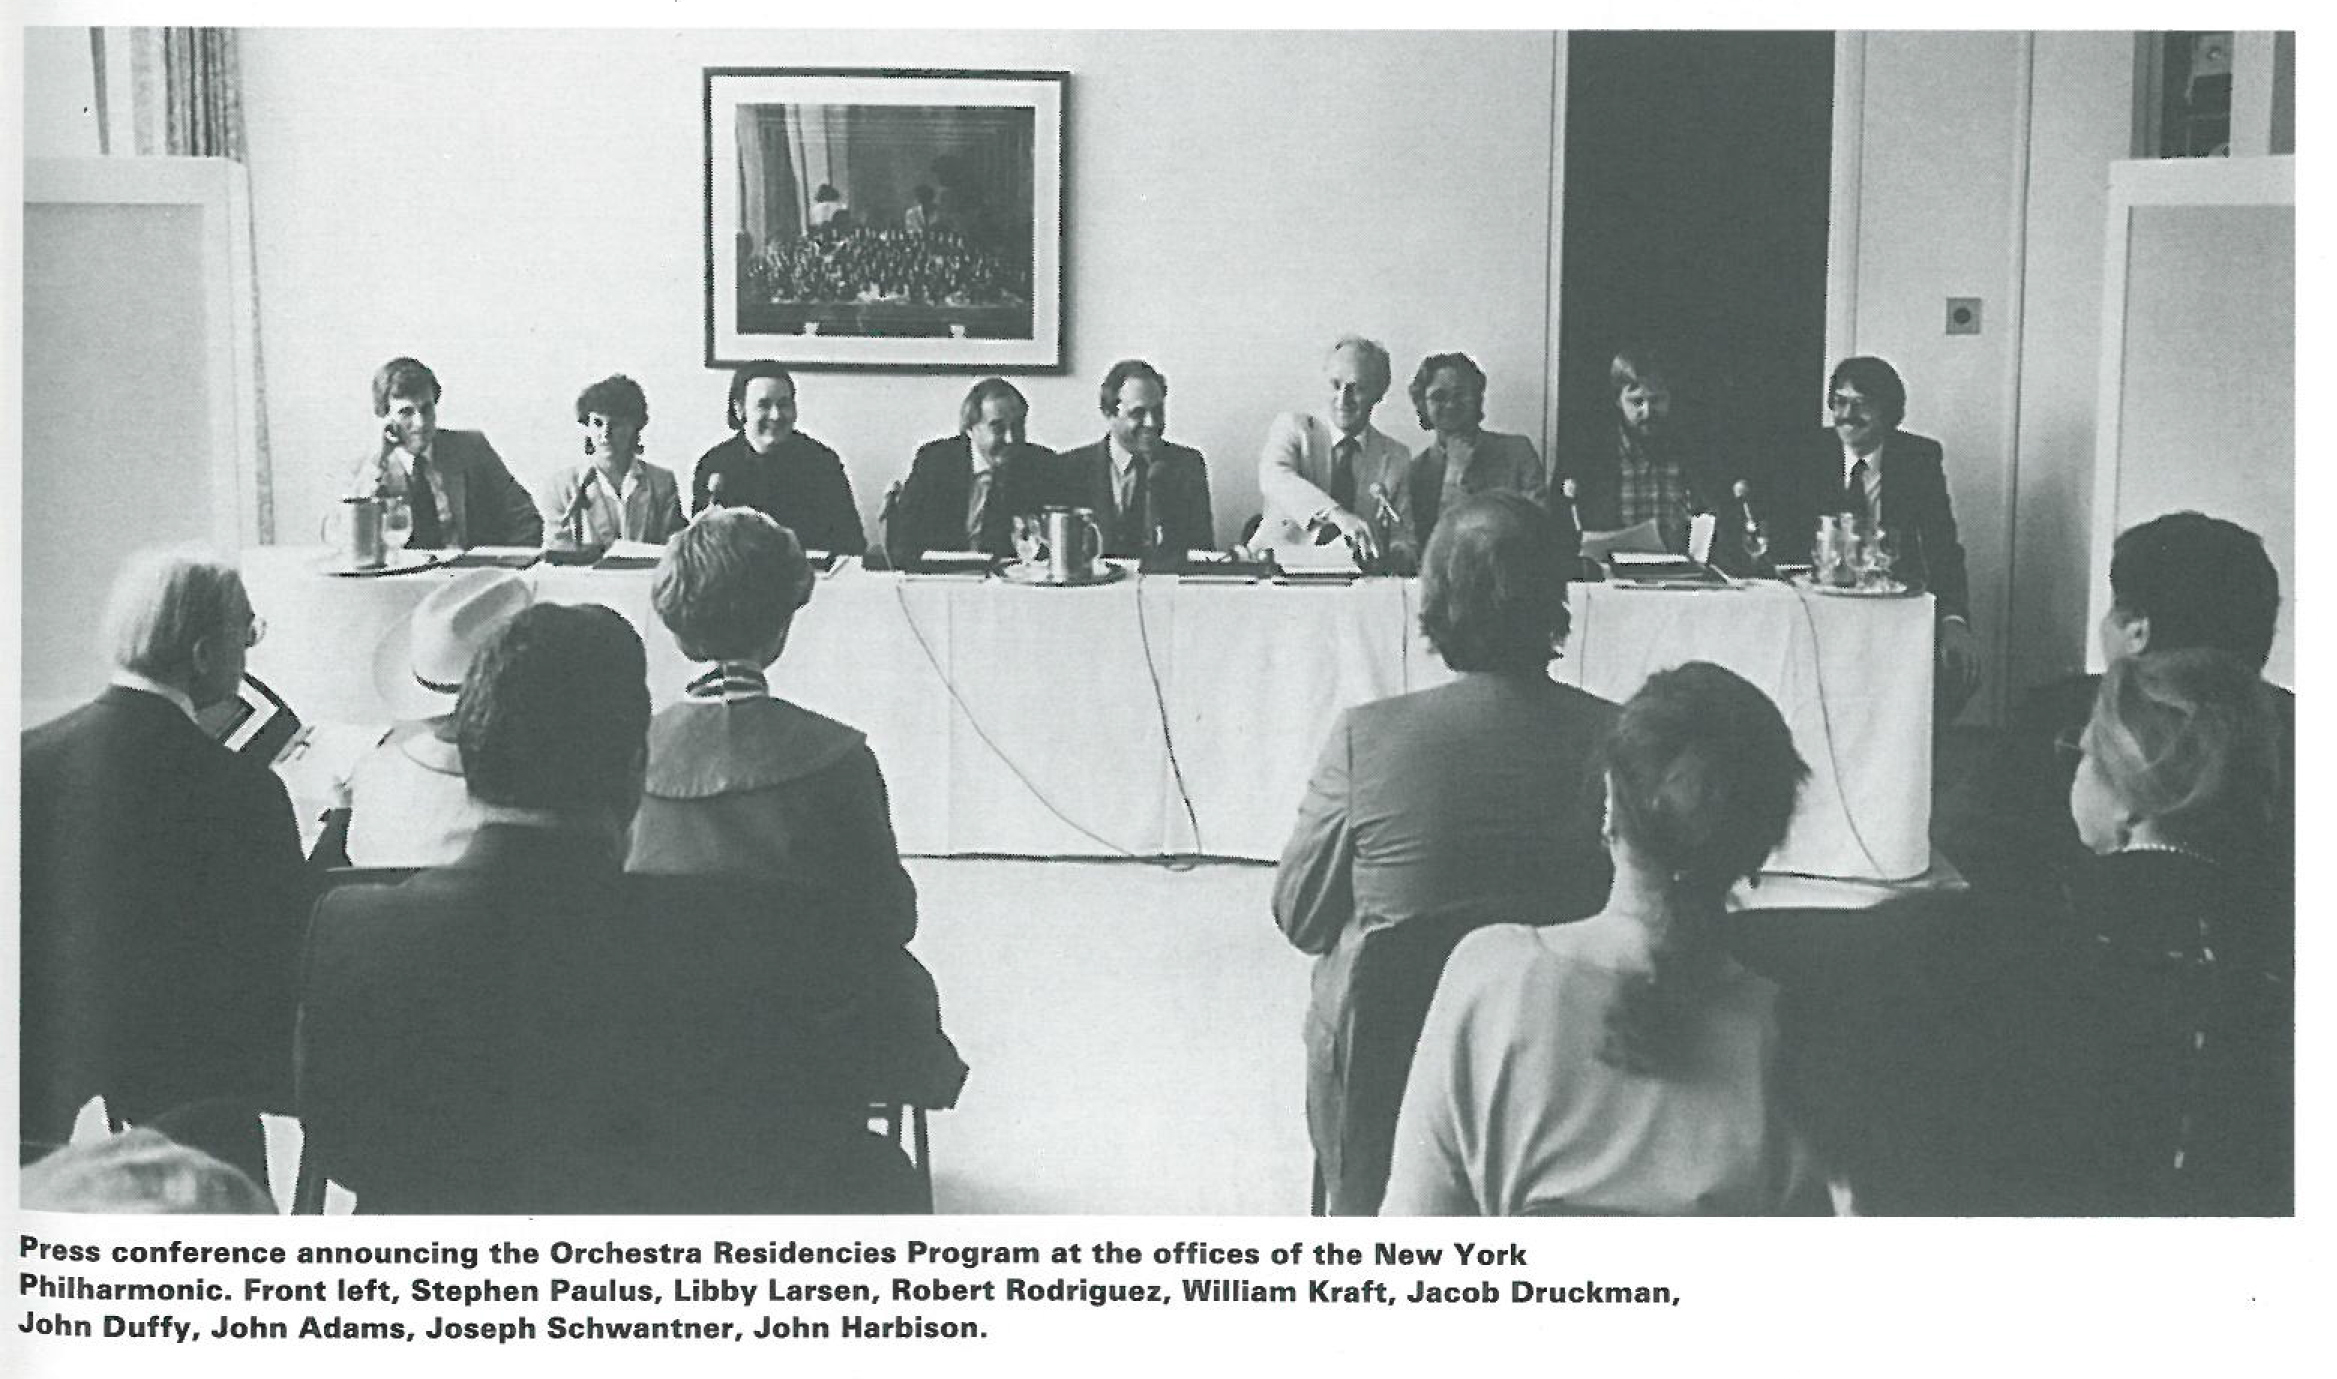 press conference for Horizons